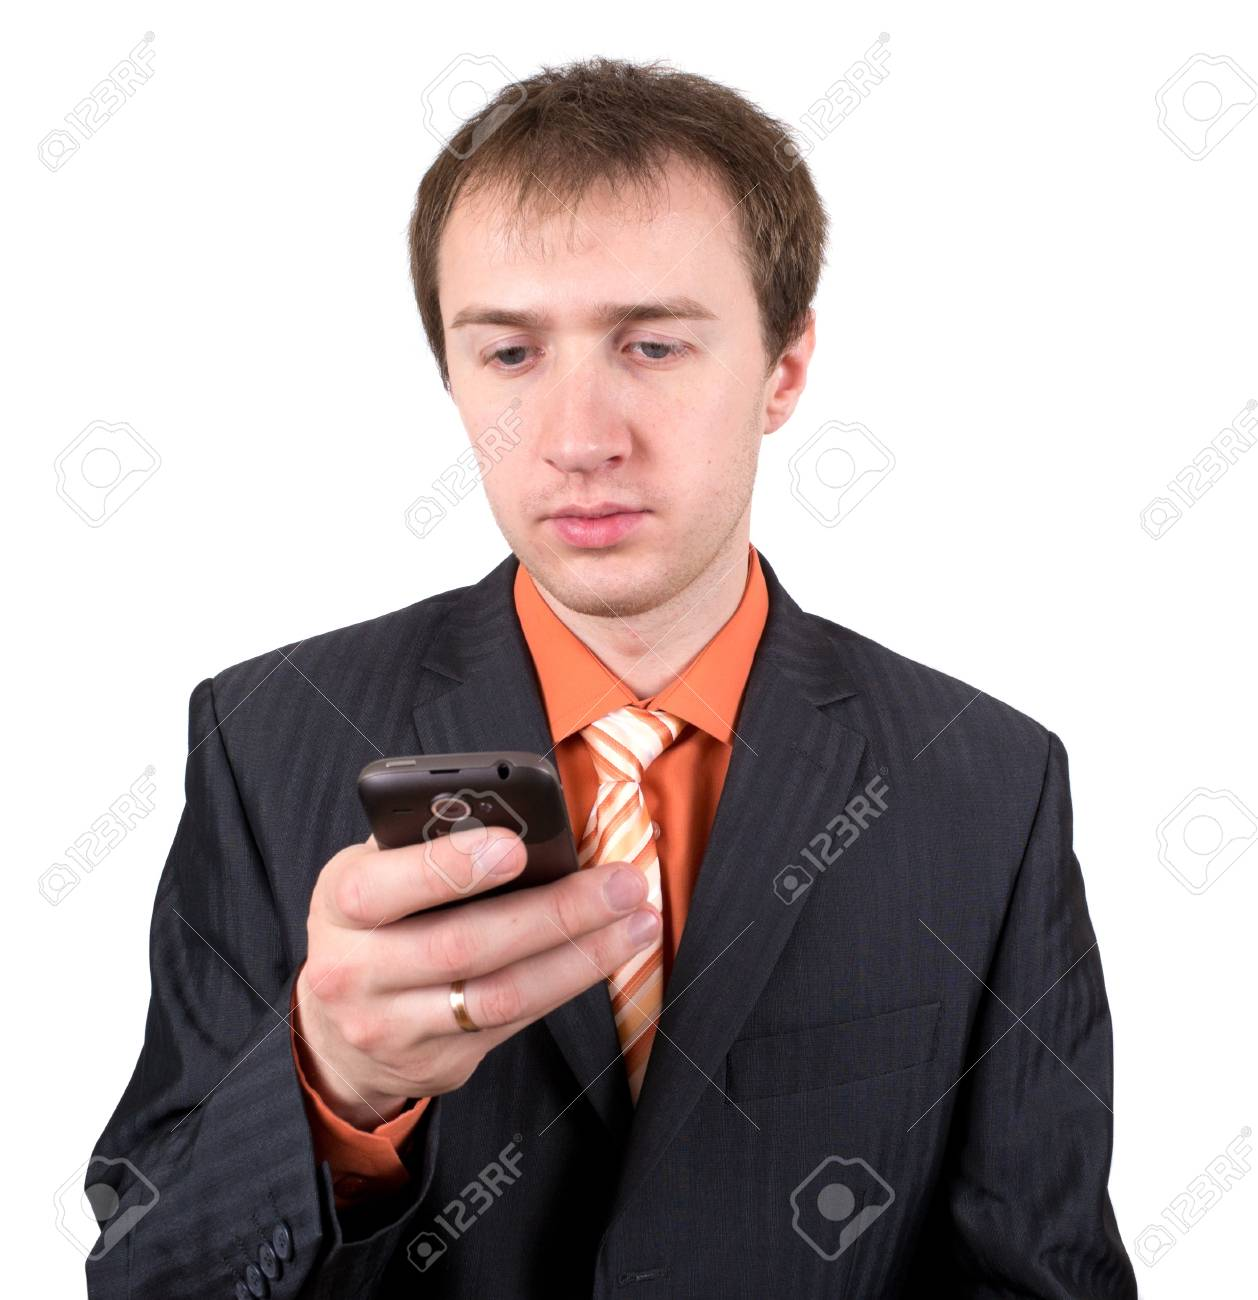 The young man with a mobile phone Stock Photo - 9629869